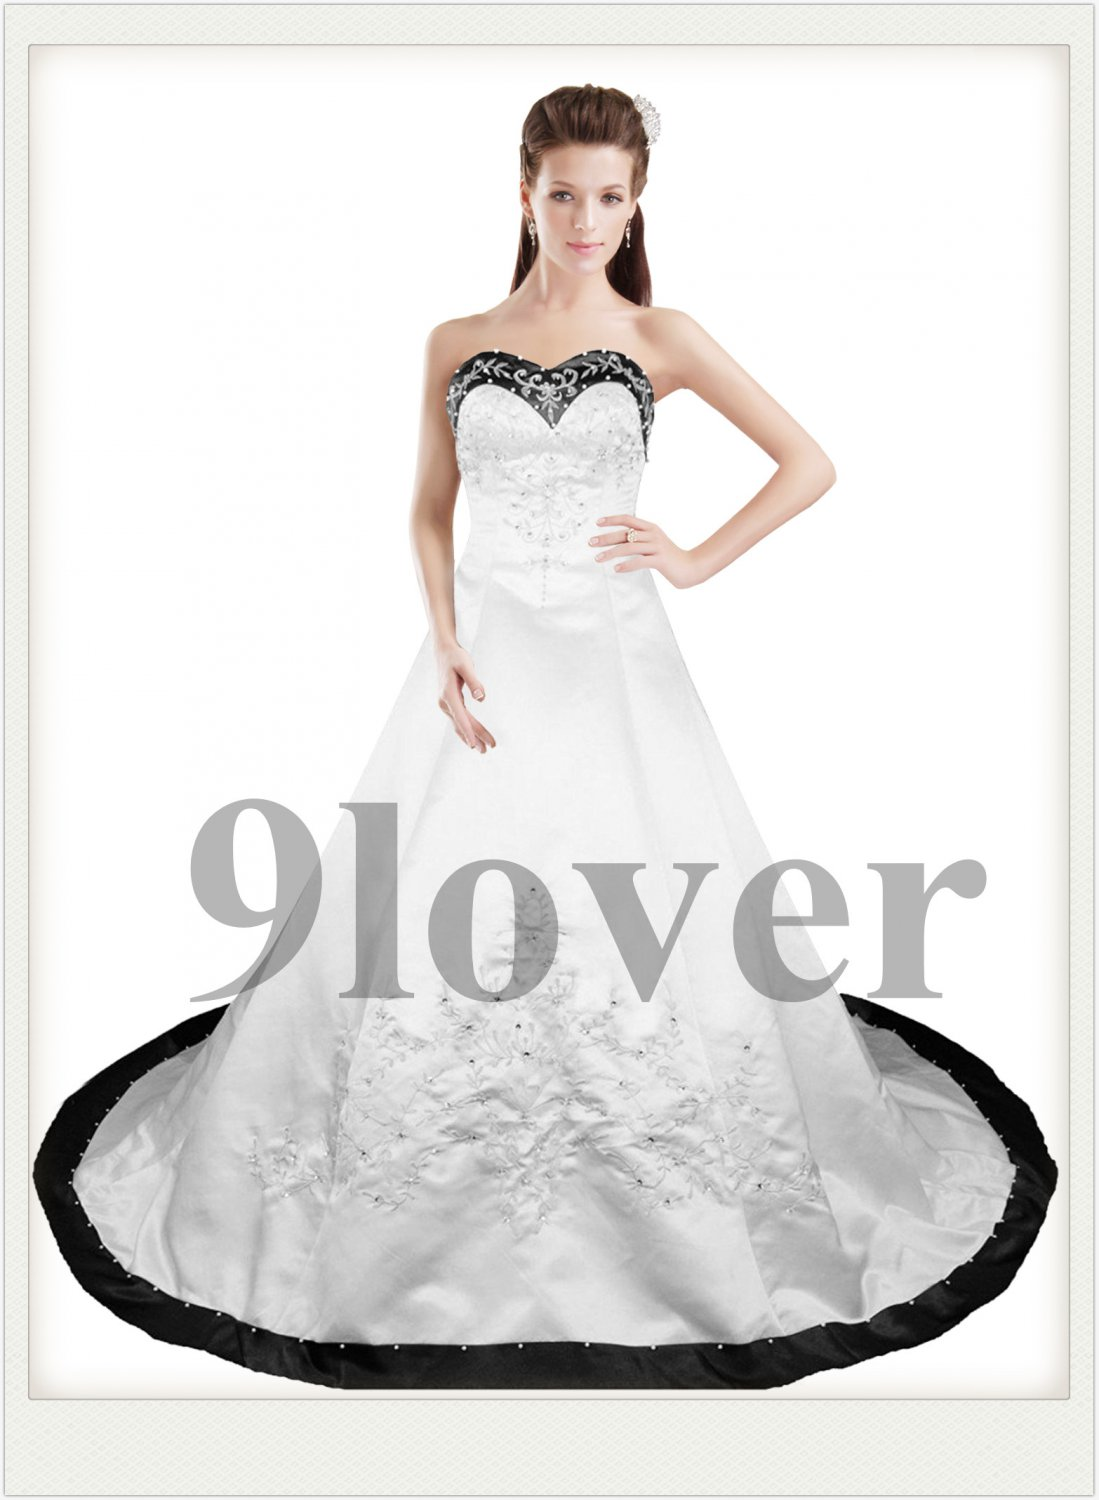 Classcial Black and White Embroidery Wedding Dress